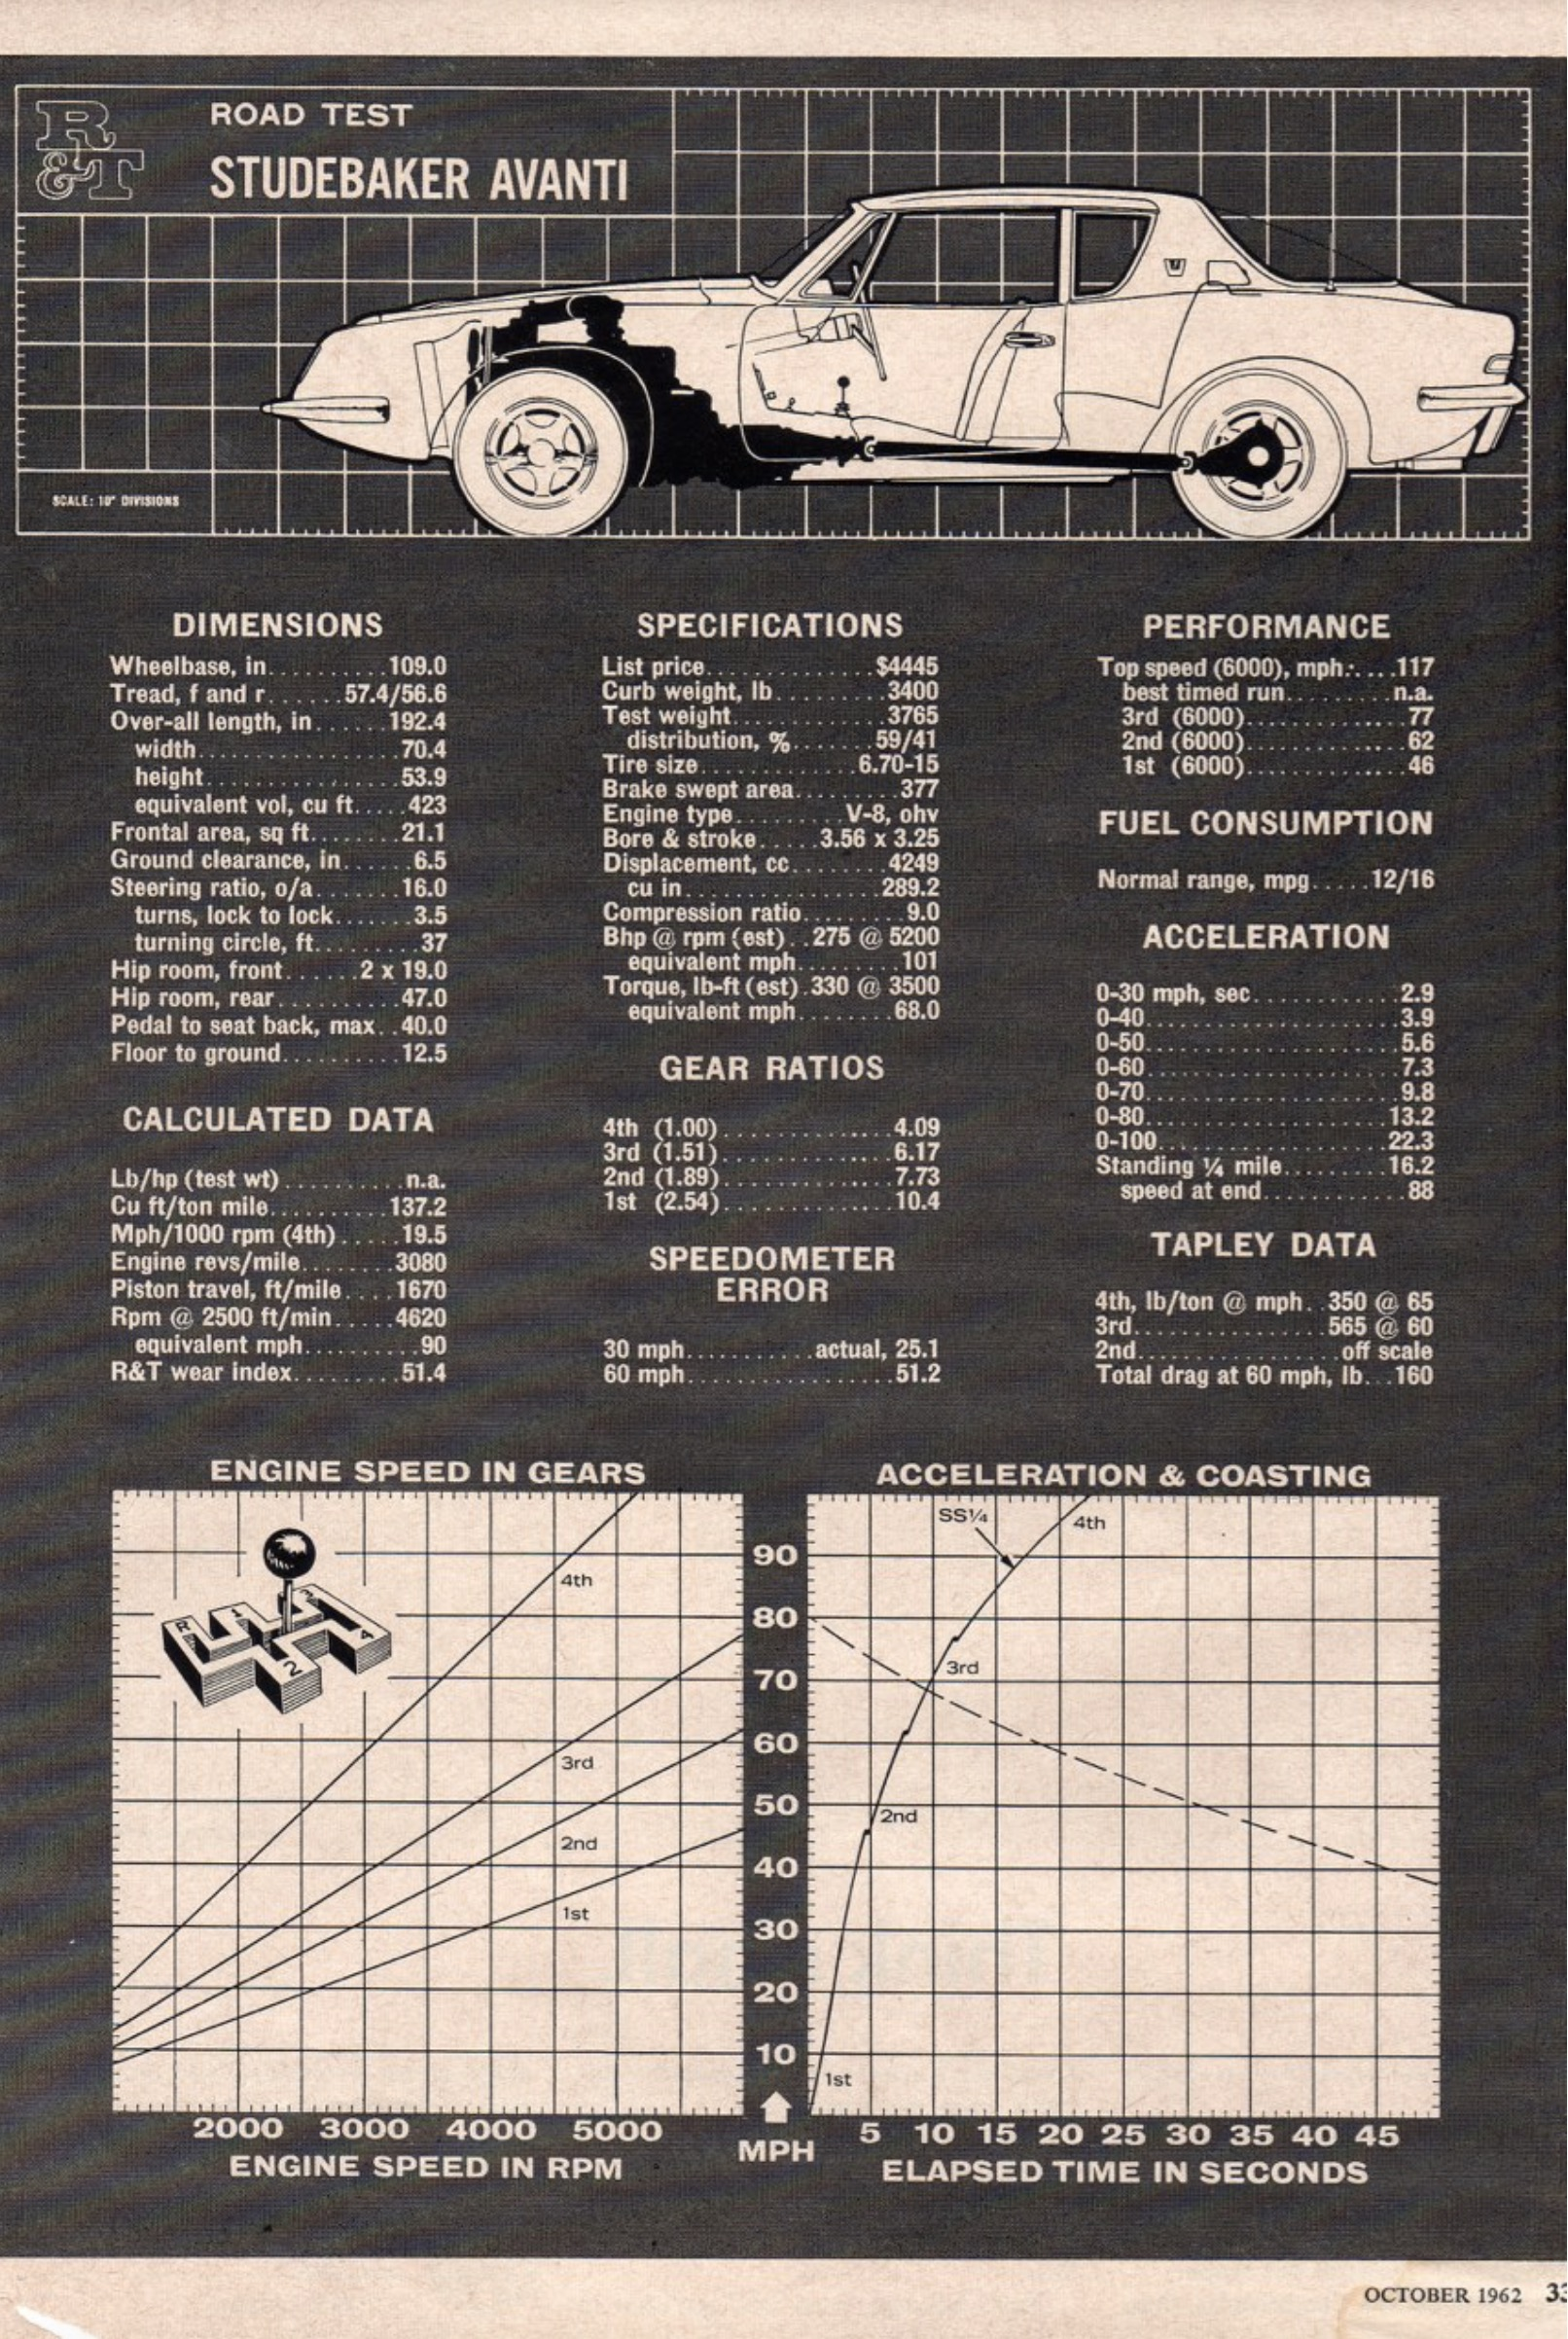 1980 Avanti Ii Wiring Diagram Wire Data Schema Garelli 2 Stroke 12v 50w Magneto 1964 Sports Car